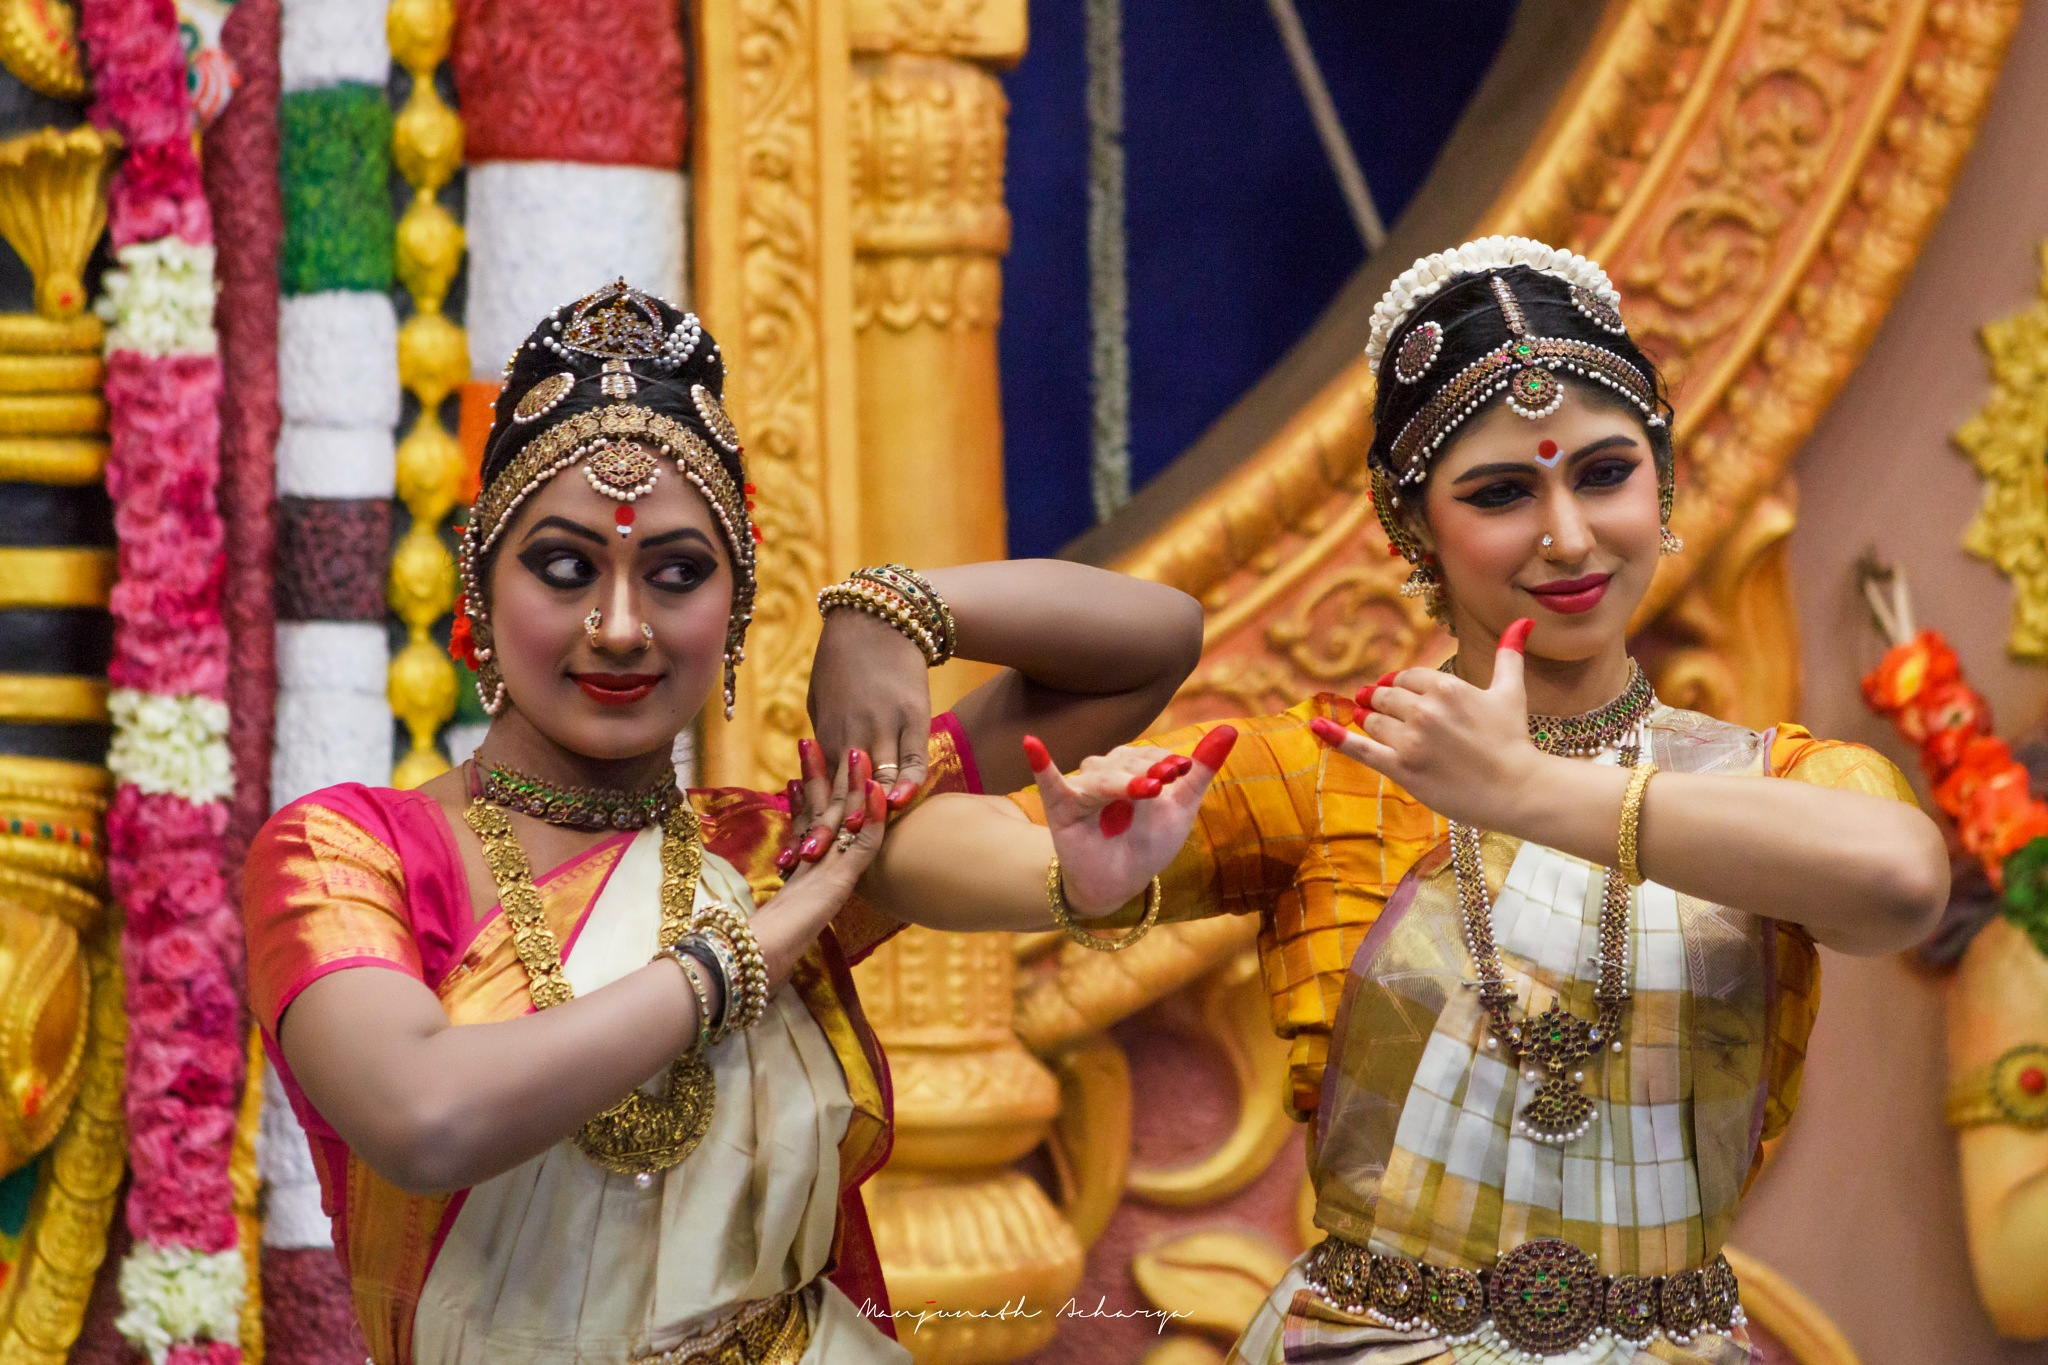 Dancers in Action by Manjunath R Acharya